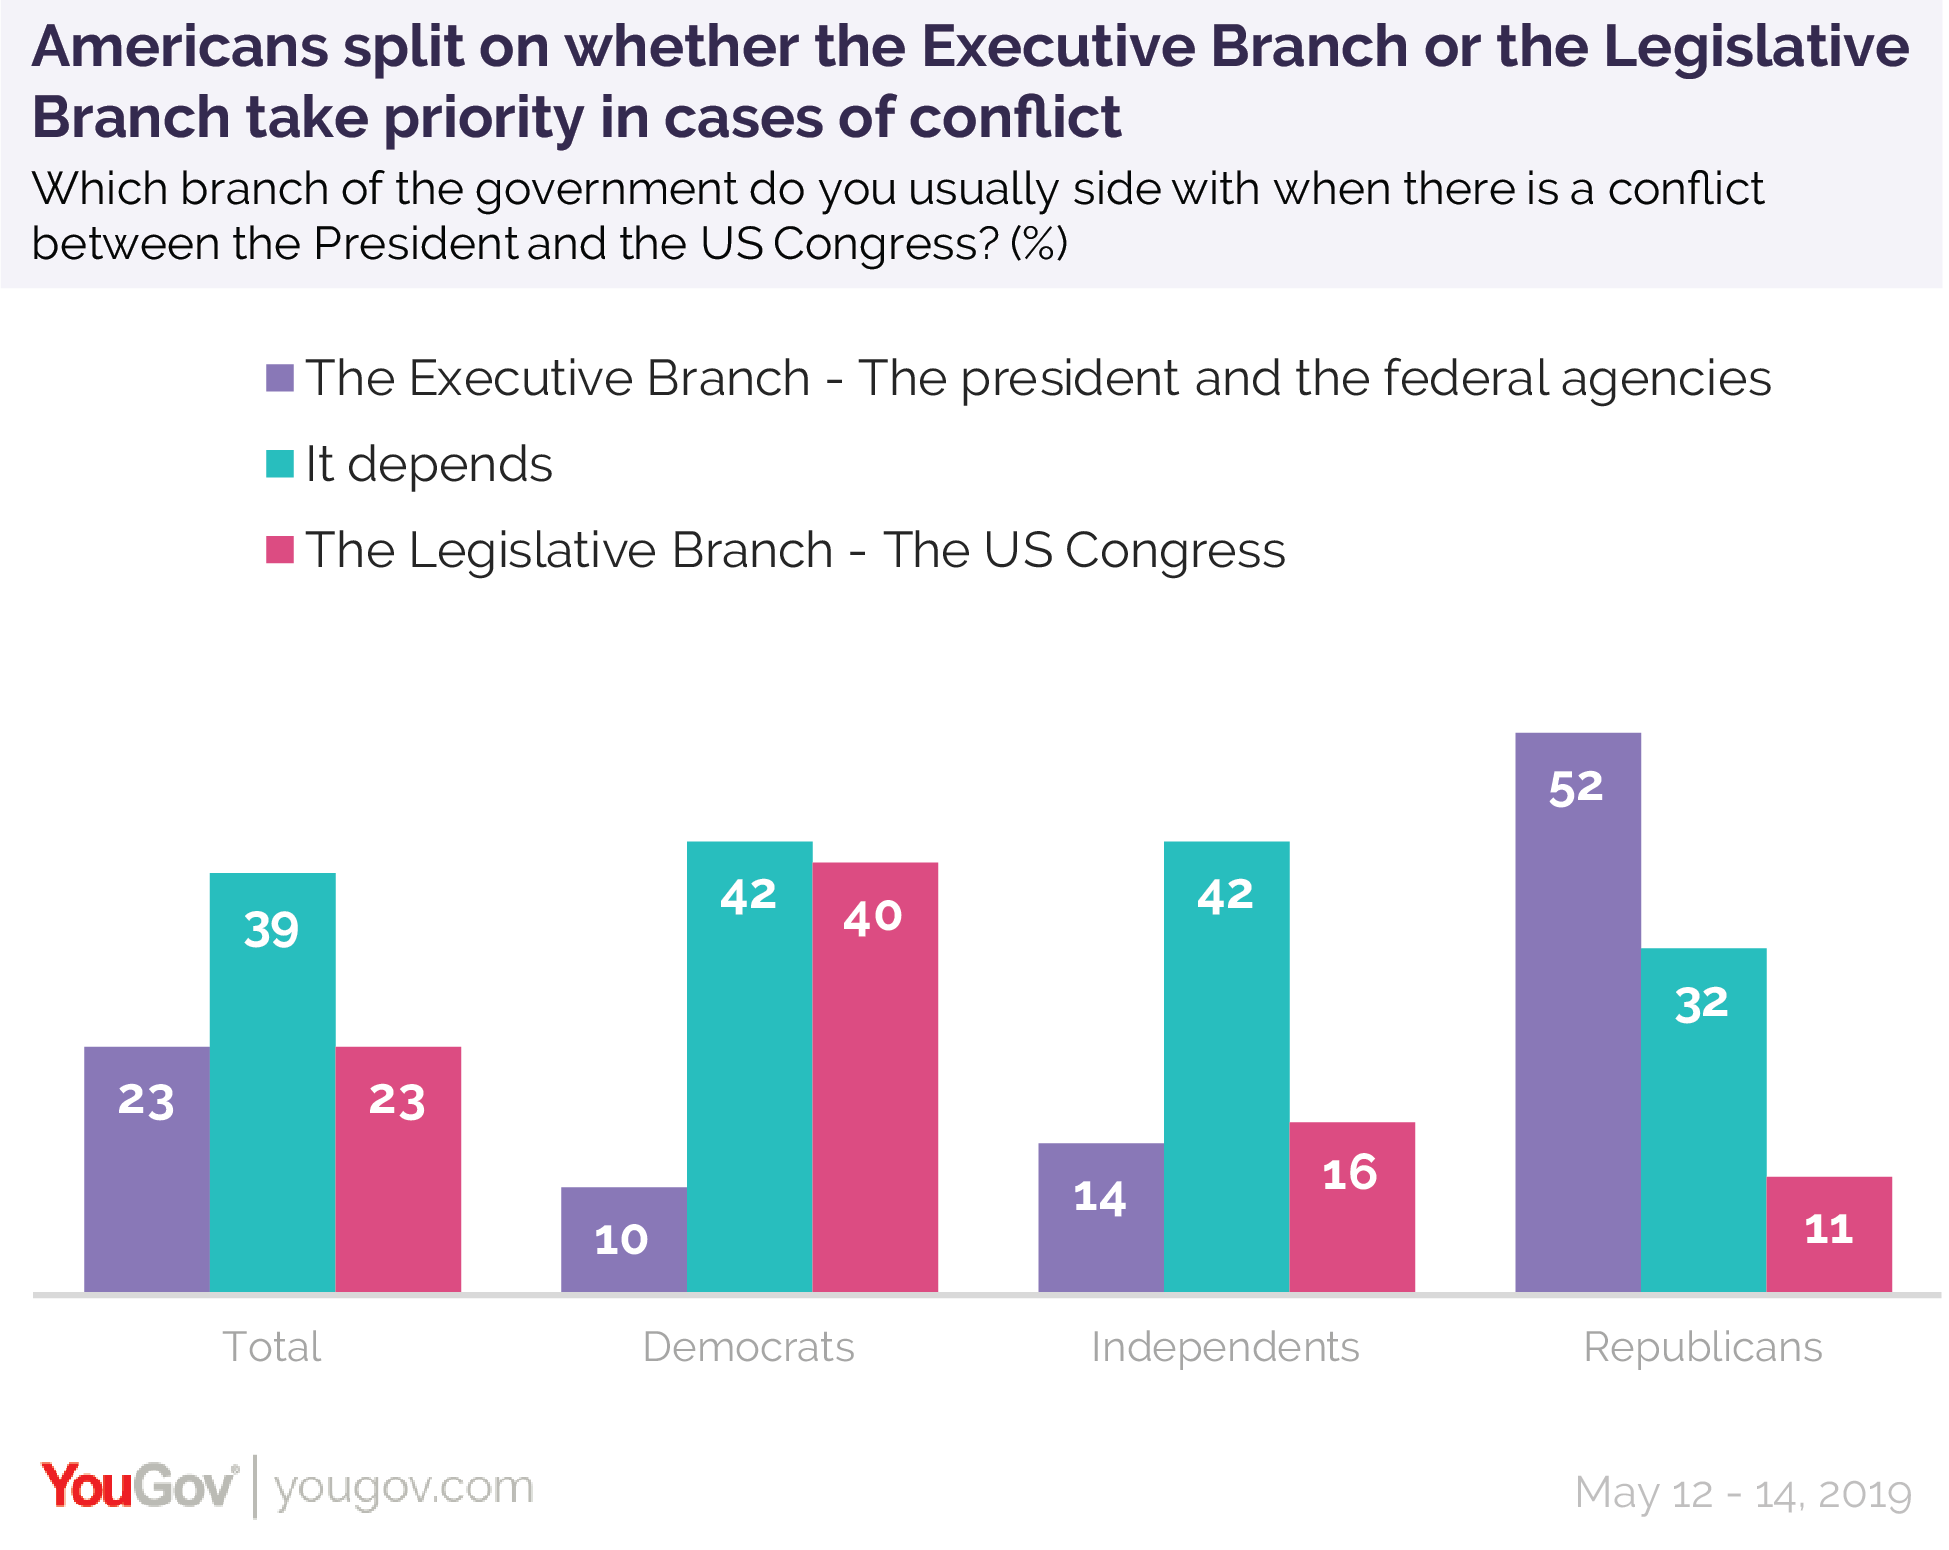 Americans split on whether the Executive Branch or the Legislative Branch take priority in cases of conflict